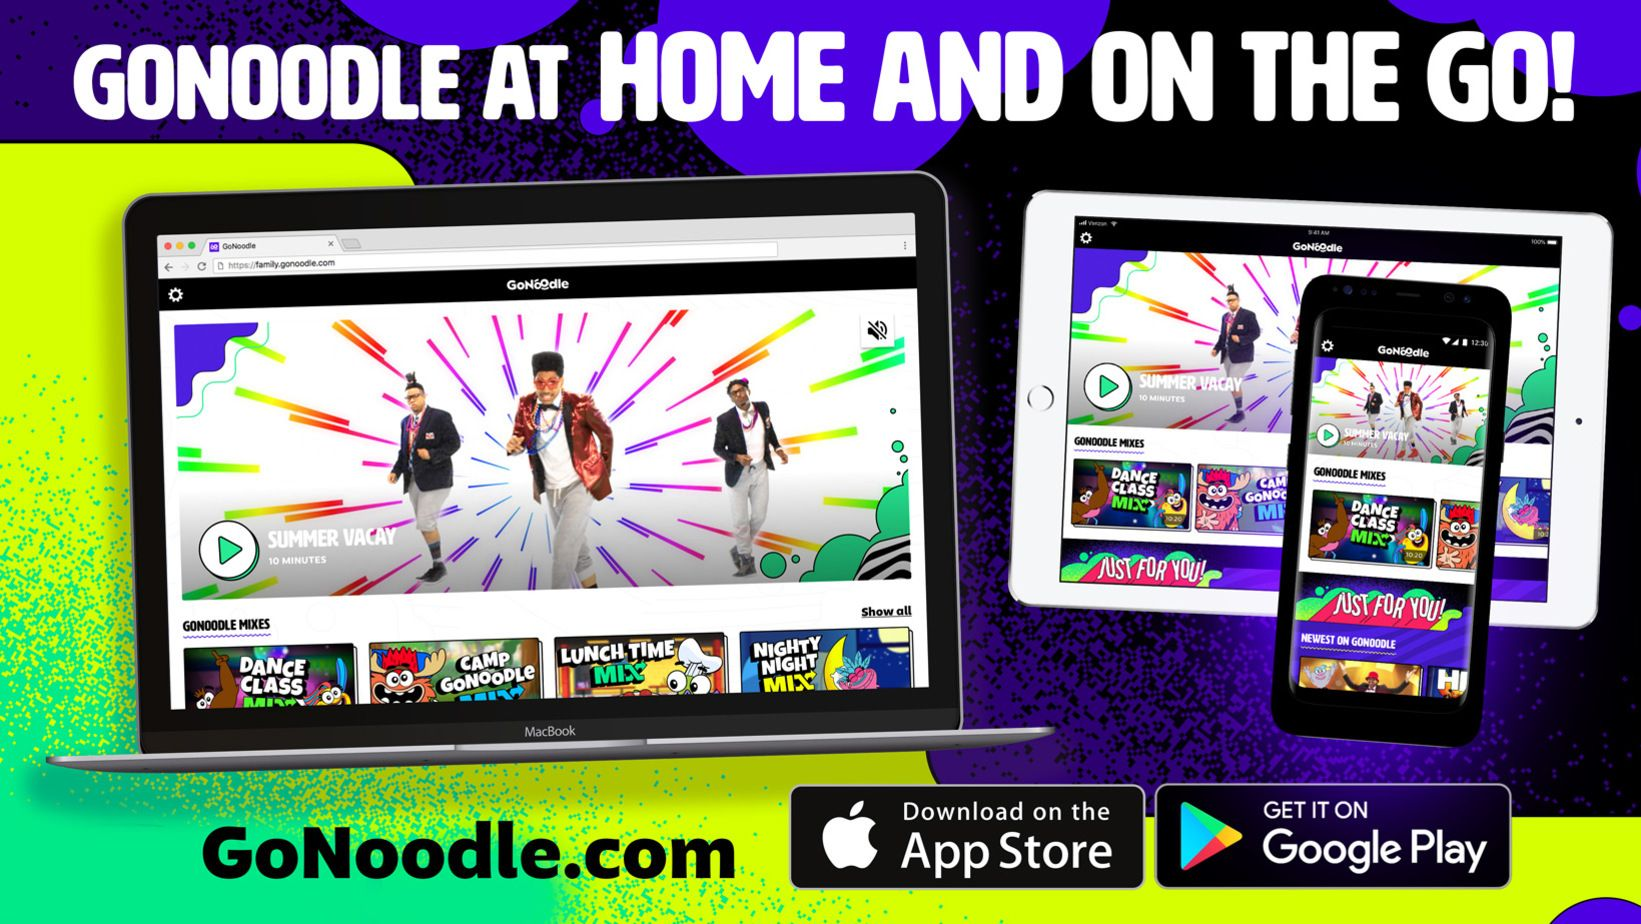 GoNoodle at Home and on the Go! Download are iOS and